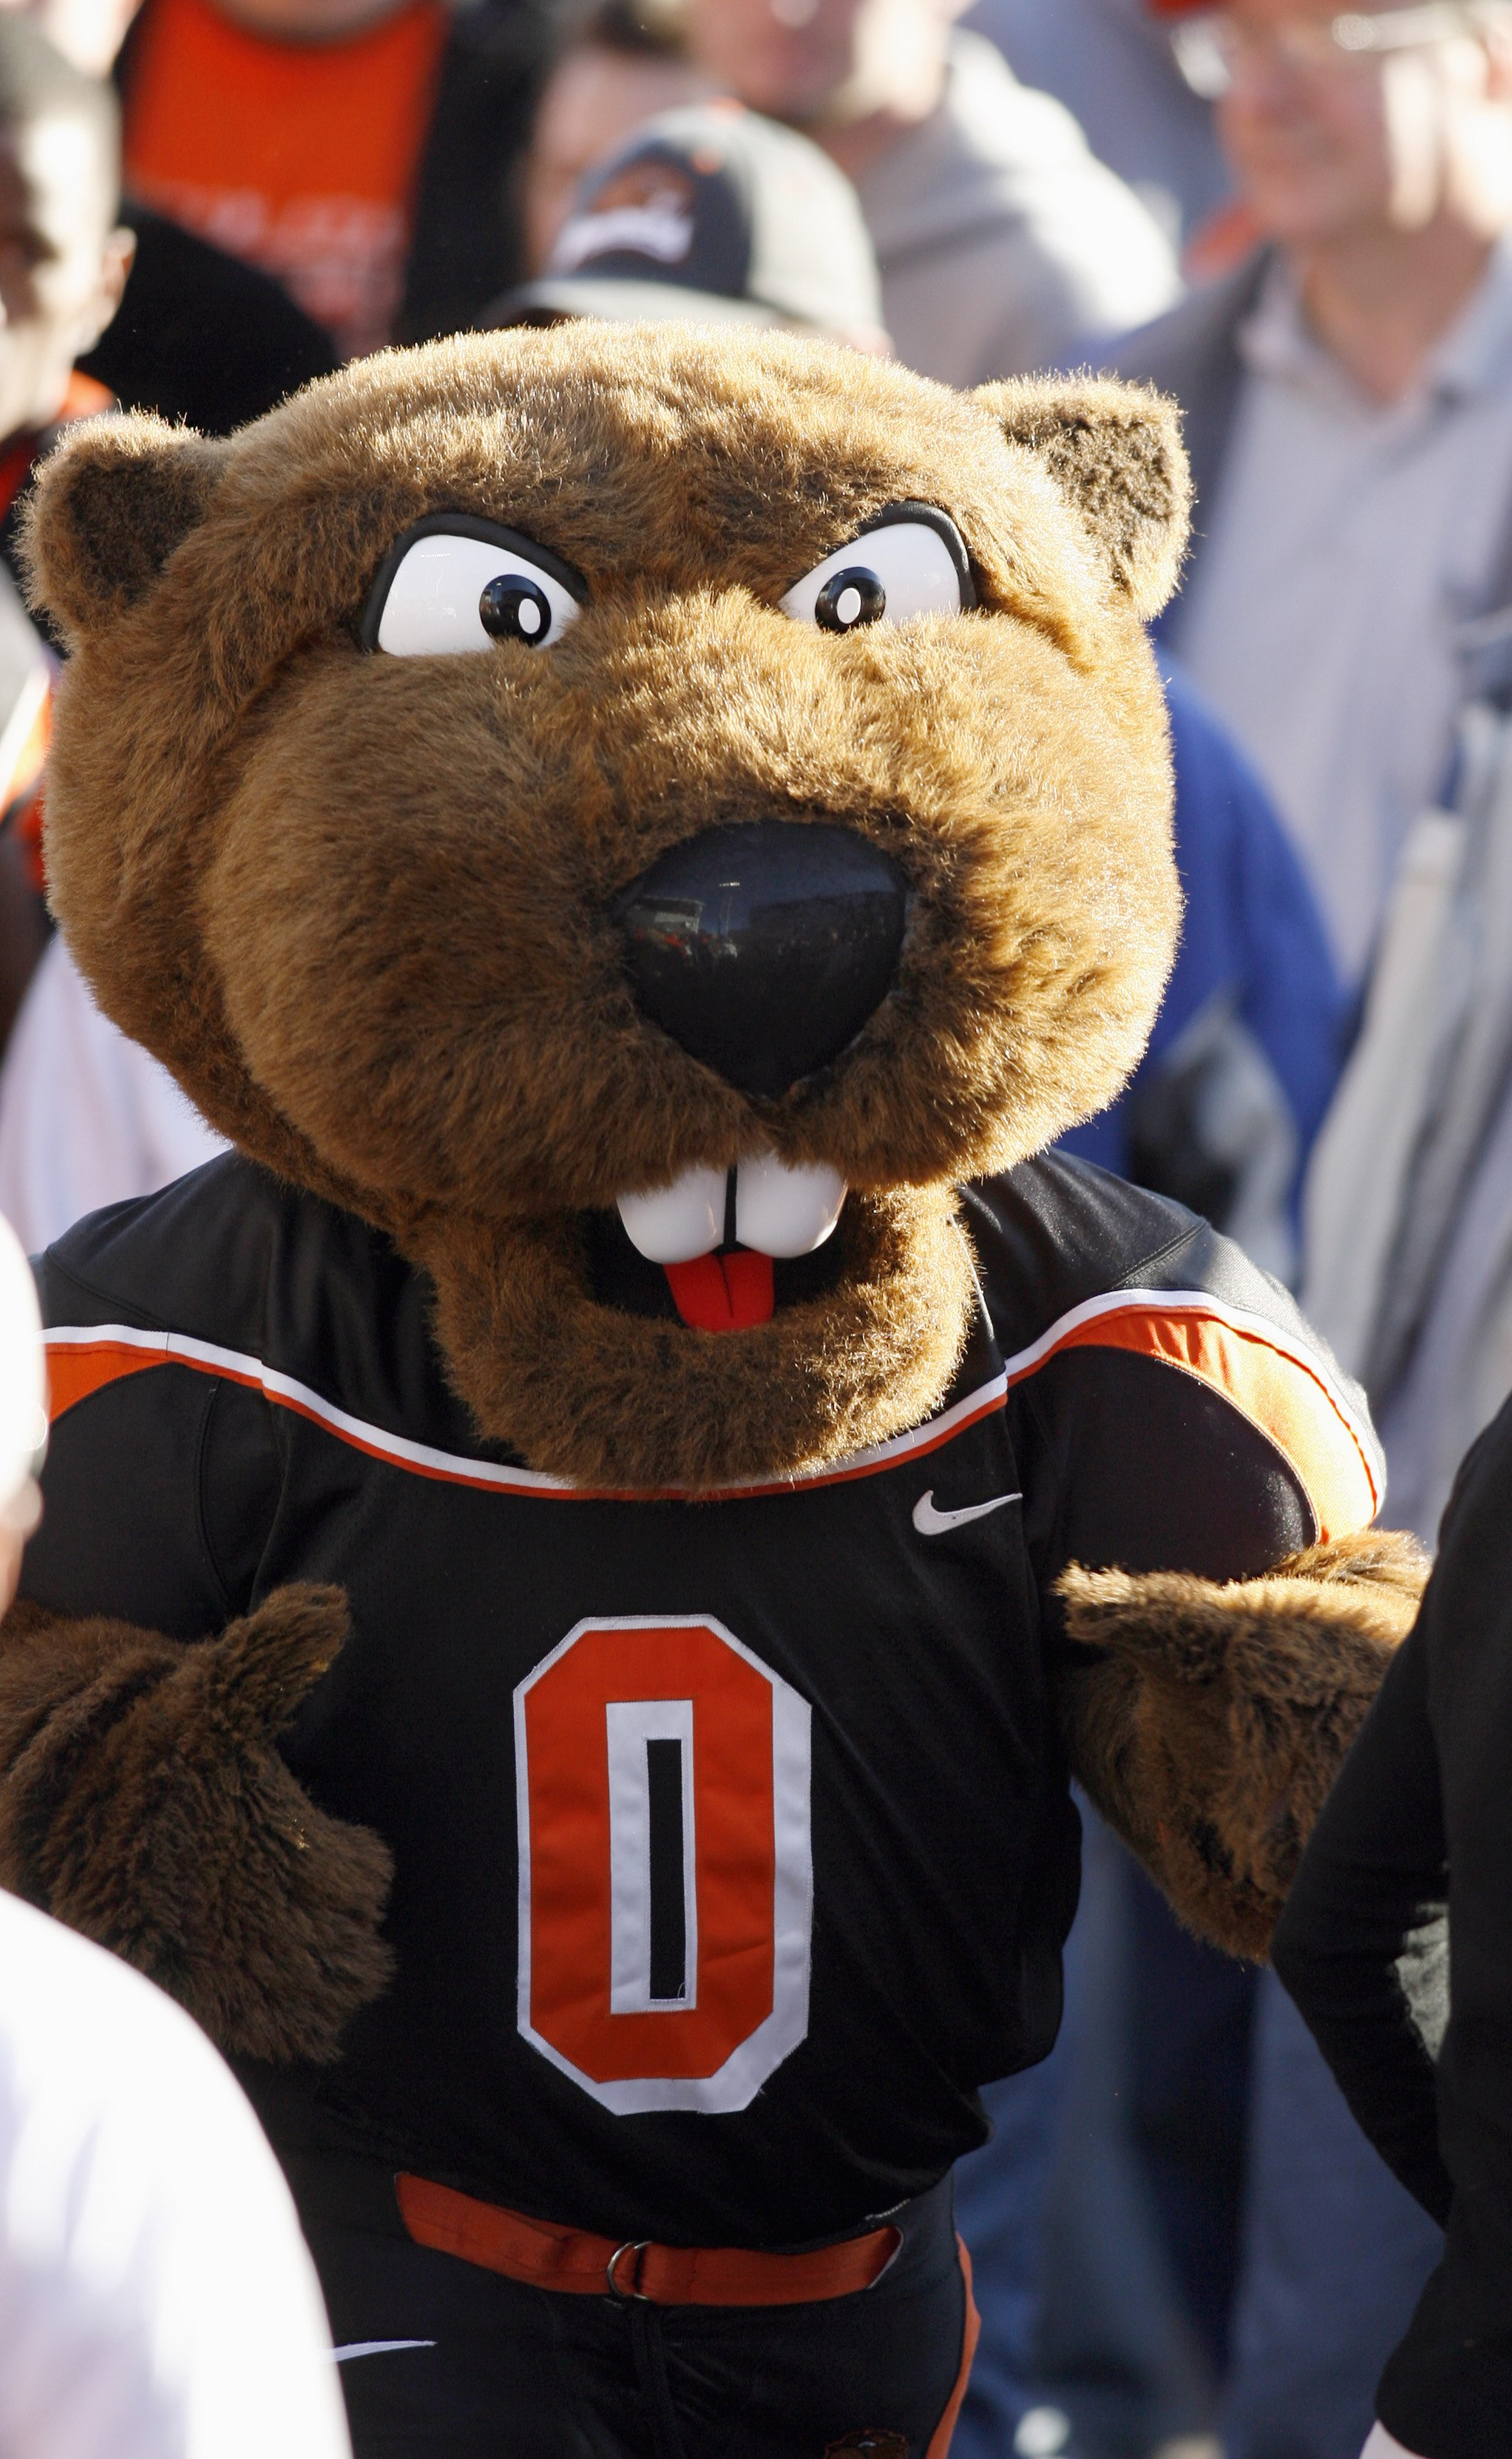 CORVALLIS, OR - OCTOBER 28:  Mascot 'Benny' of the Oregon State Beavers mixes with the crowd after the game against the Southern California Trojans at Reser Stadium on October 28, 2006 in Corvallis, Oregon. The Beavers defeated the Trojans 33-31. (Photo b